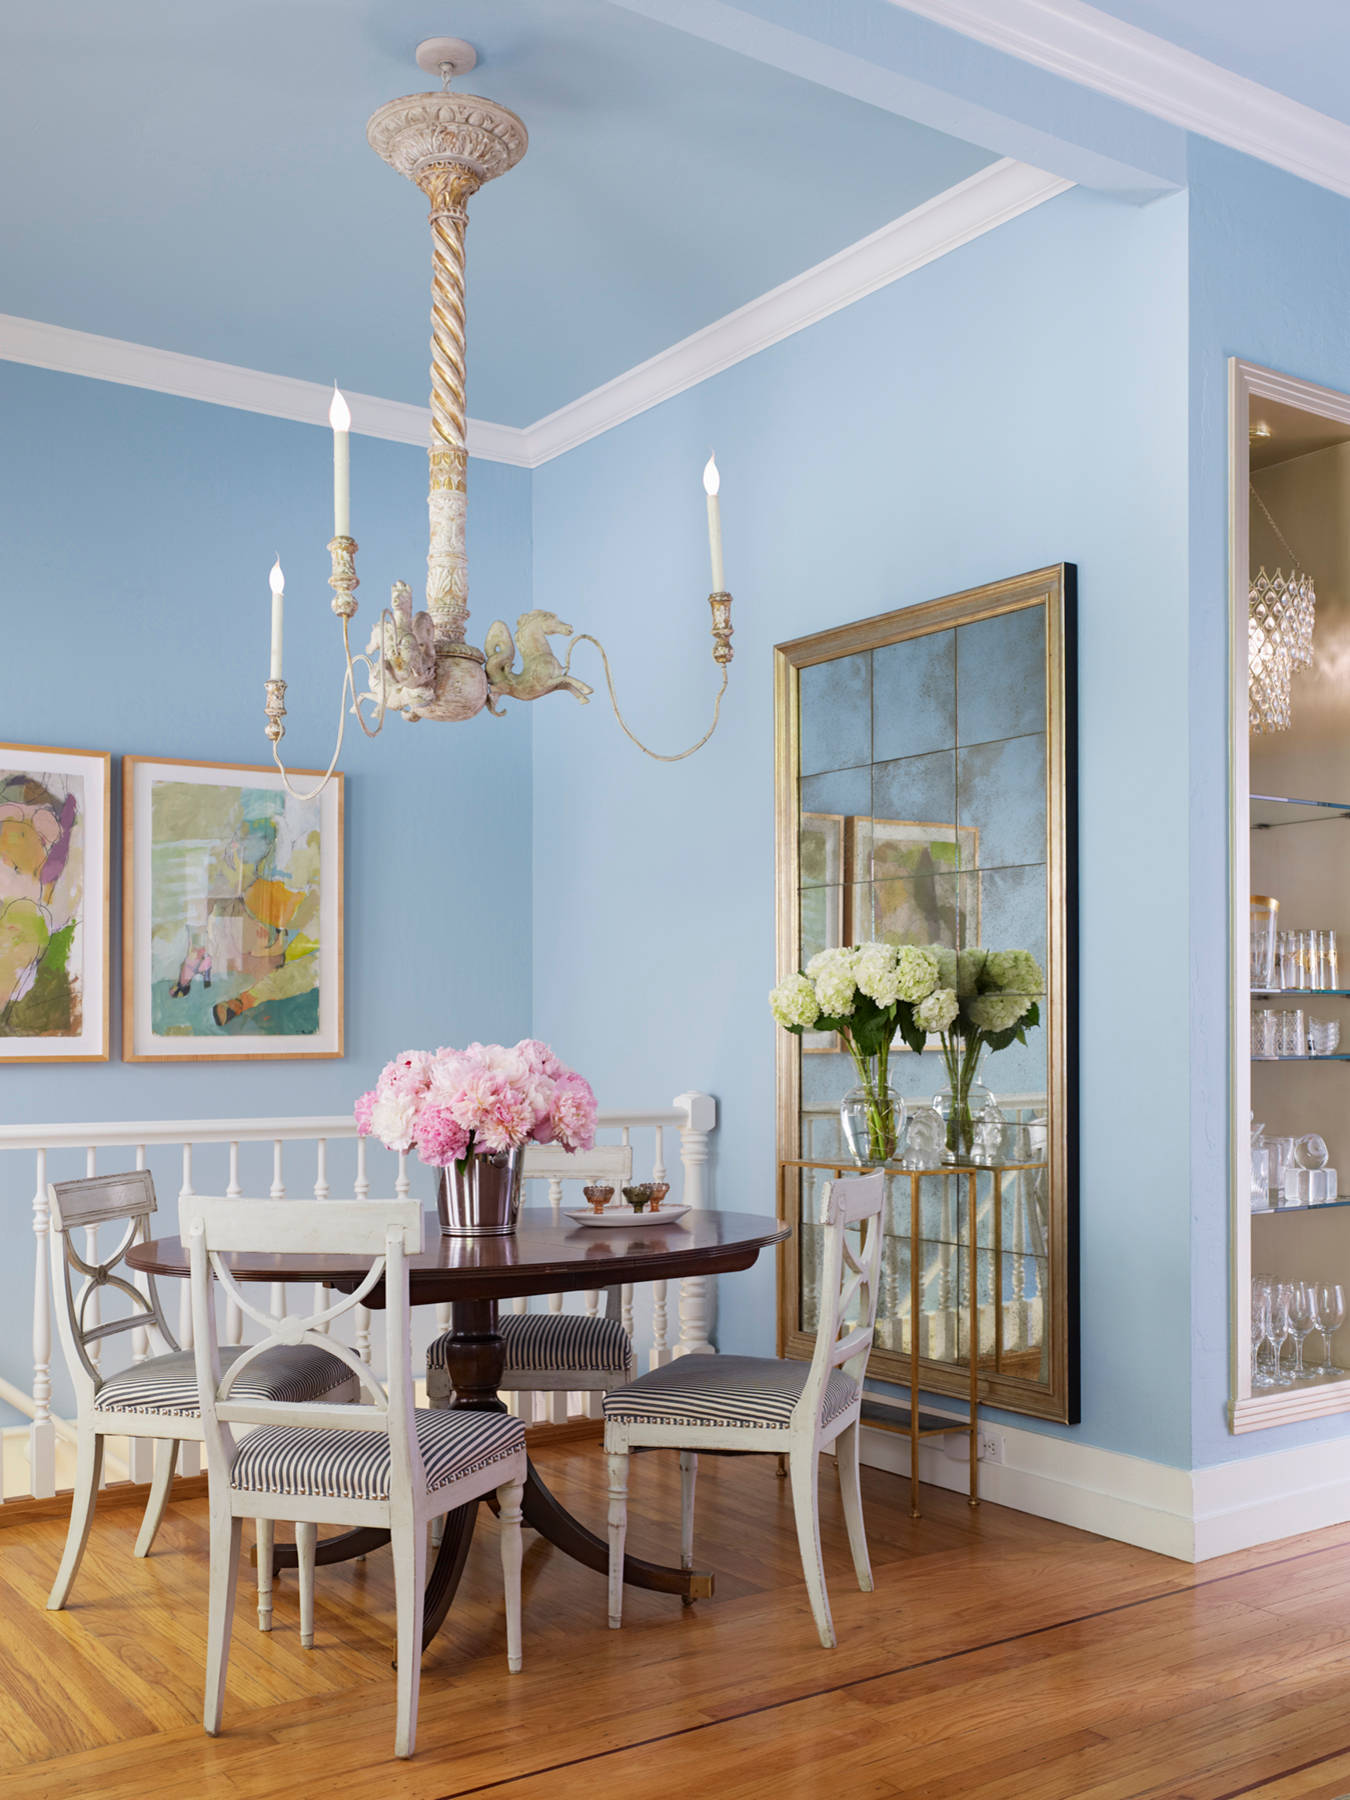 5 Stunning Pastel Rooms Decorating With Pantone 2016 Color Trends Shoproomideas